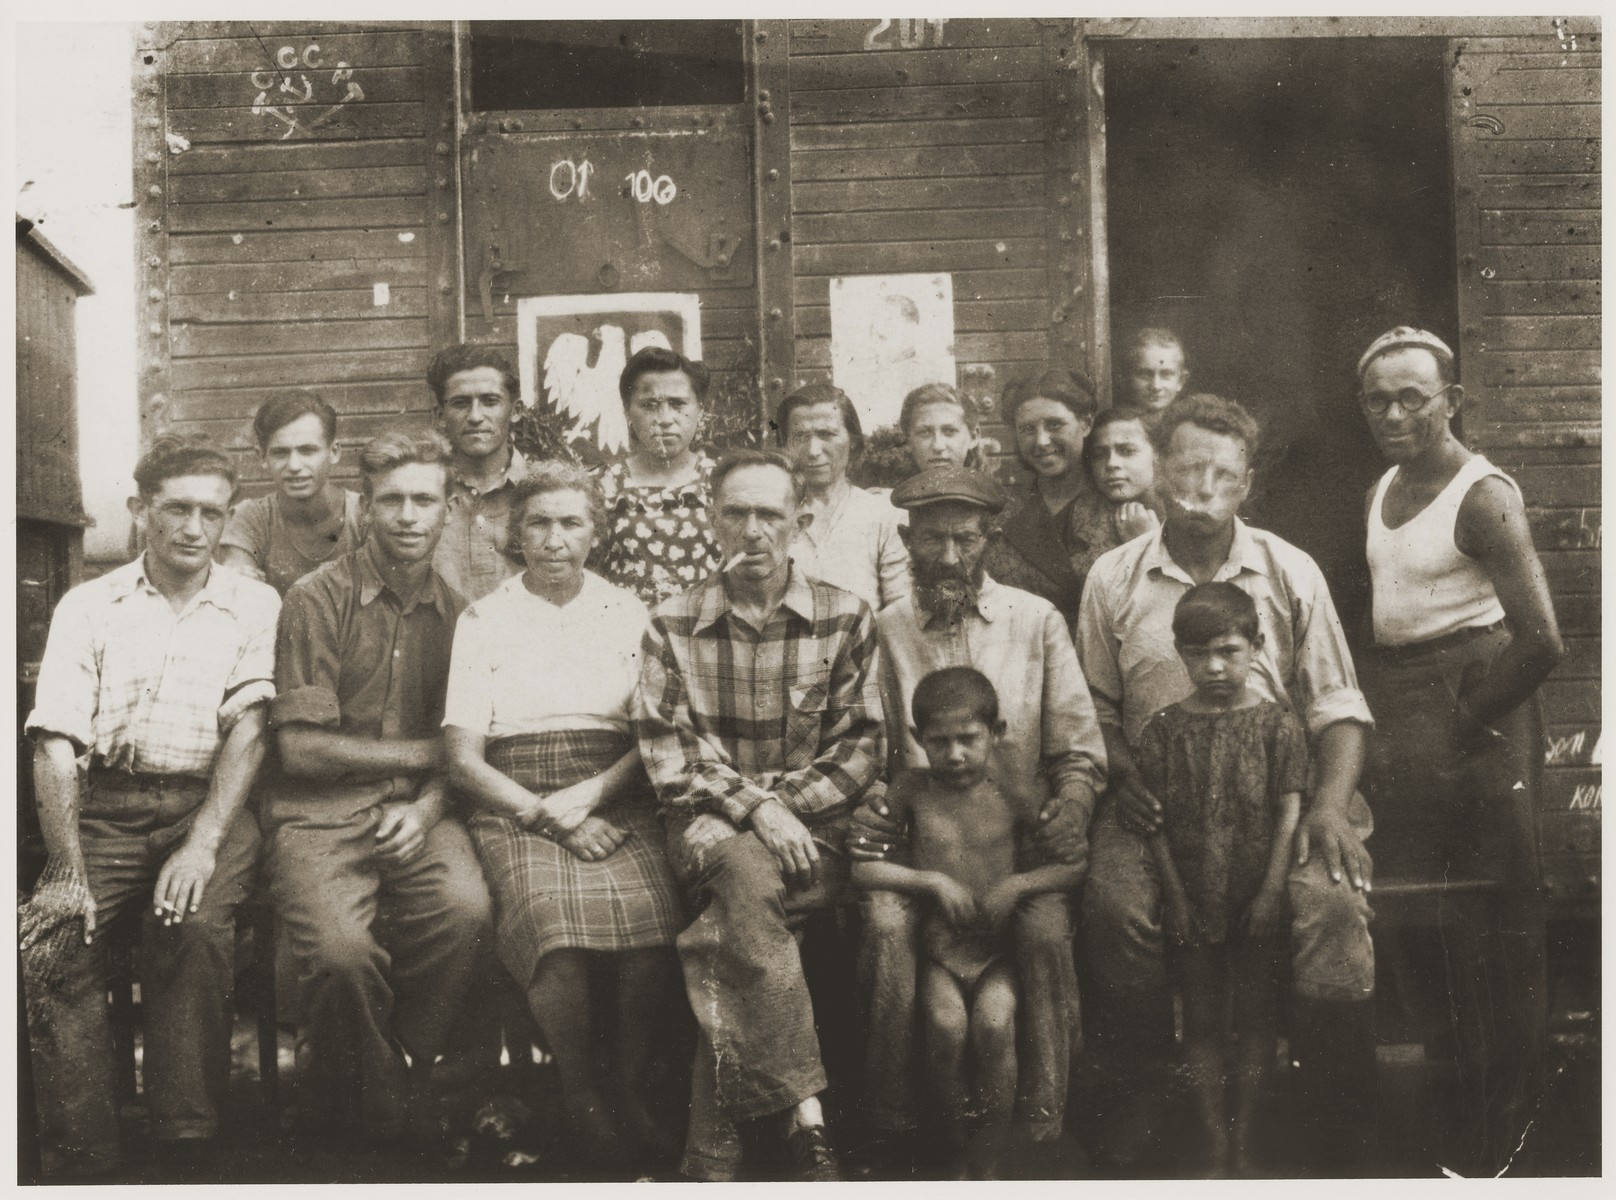 Doba [Cymerman] Yermus, Moshe Yermus, (center) and their sons Sam (third from left) and Aaron (second from left) wait at a train station in Khazakstan for their return to Poland following the end of World War II.